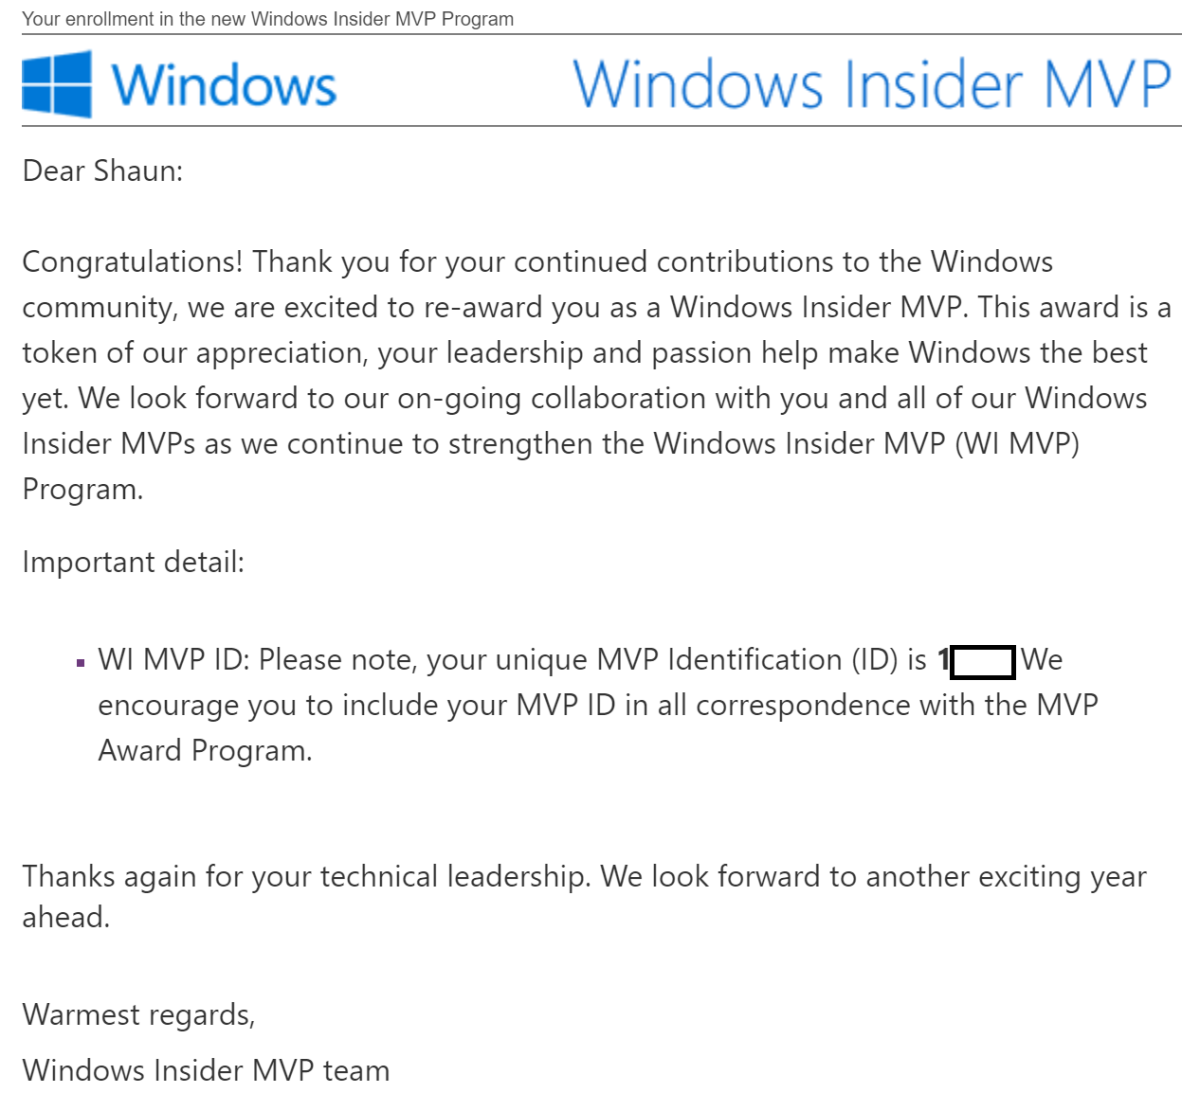 Windows Insider MVP: 2018